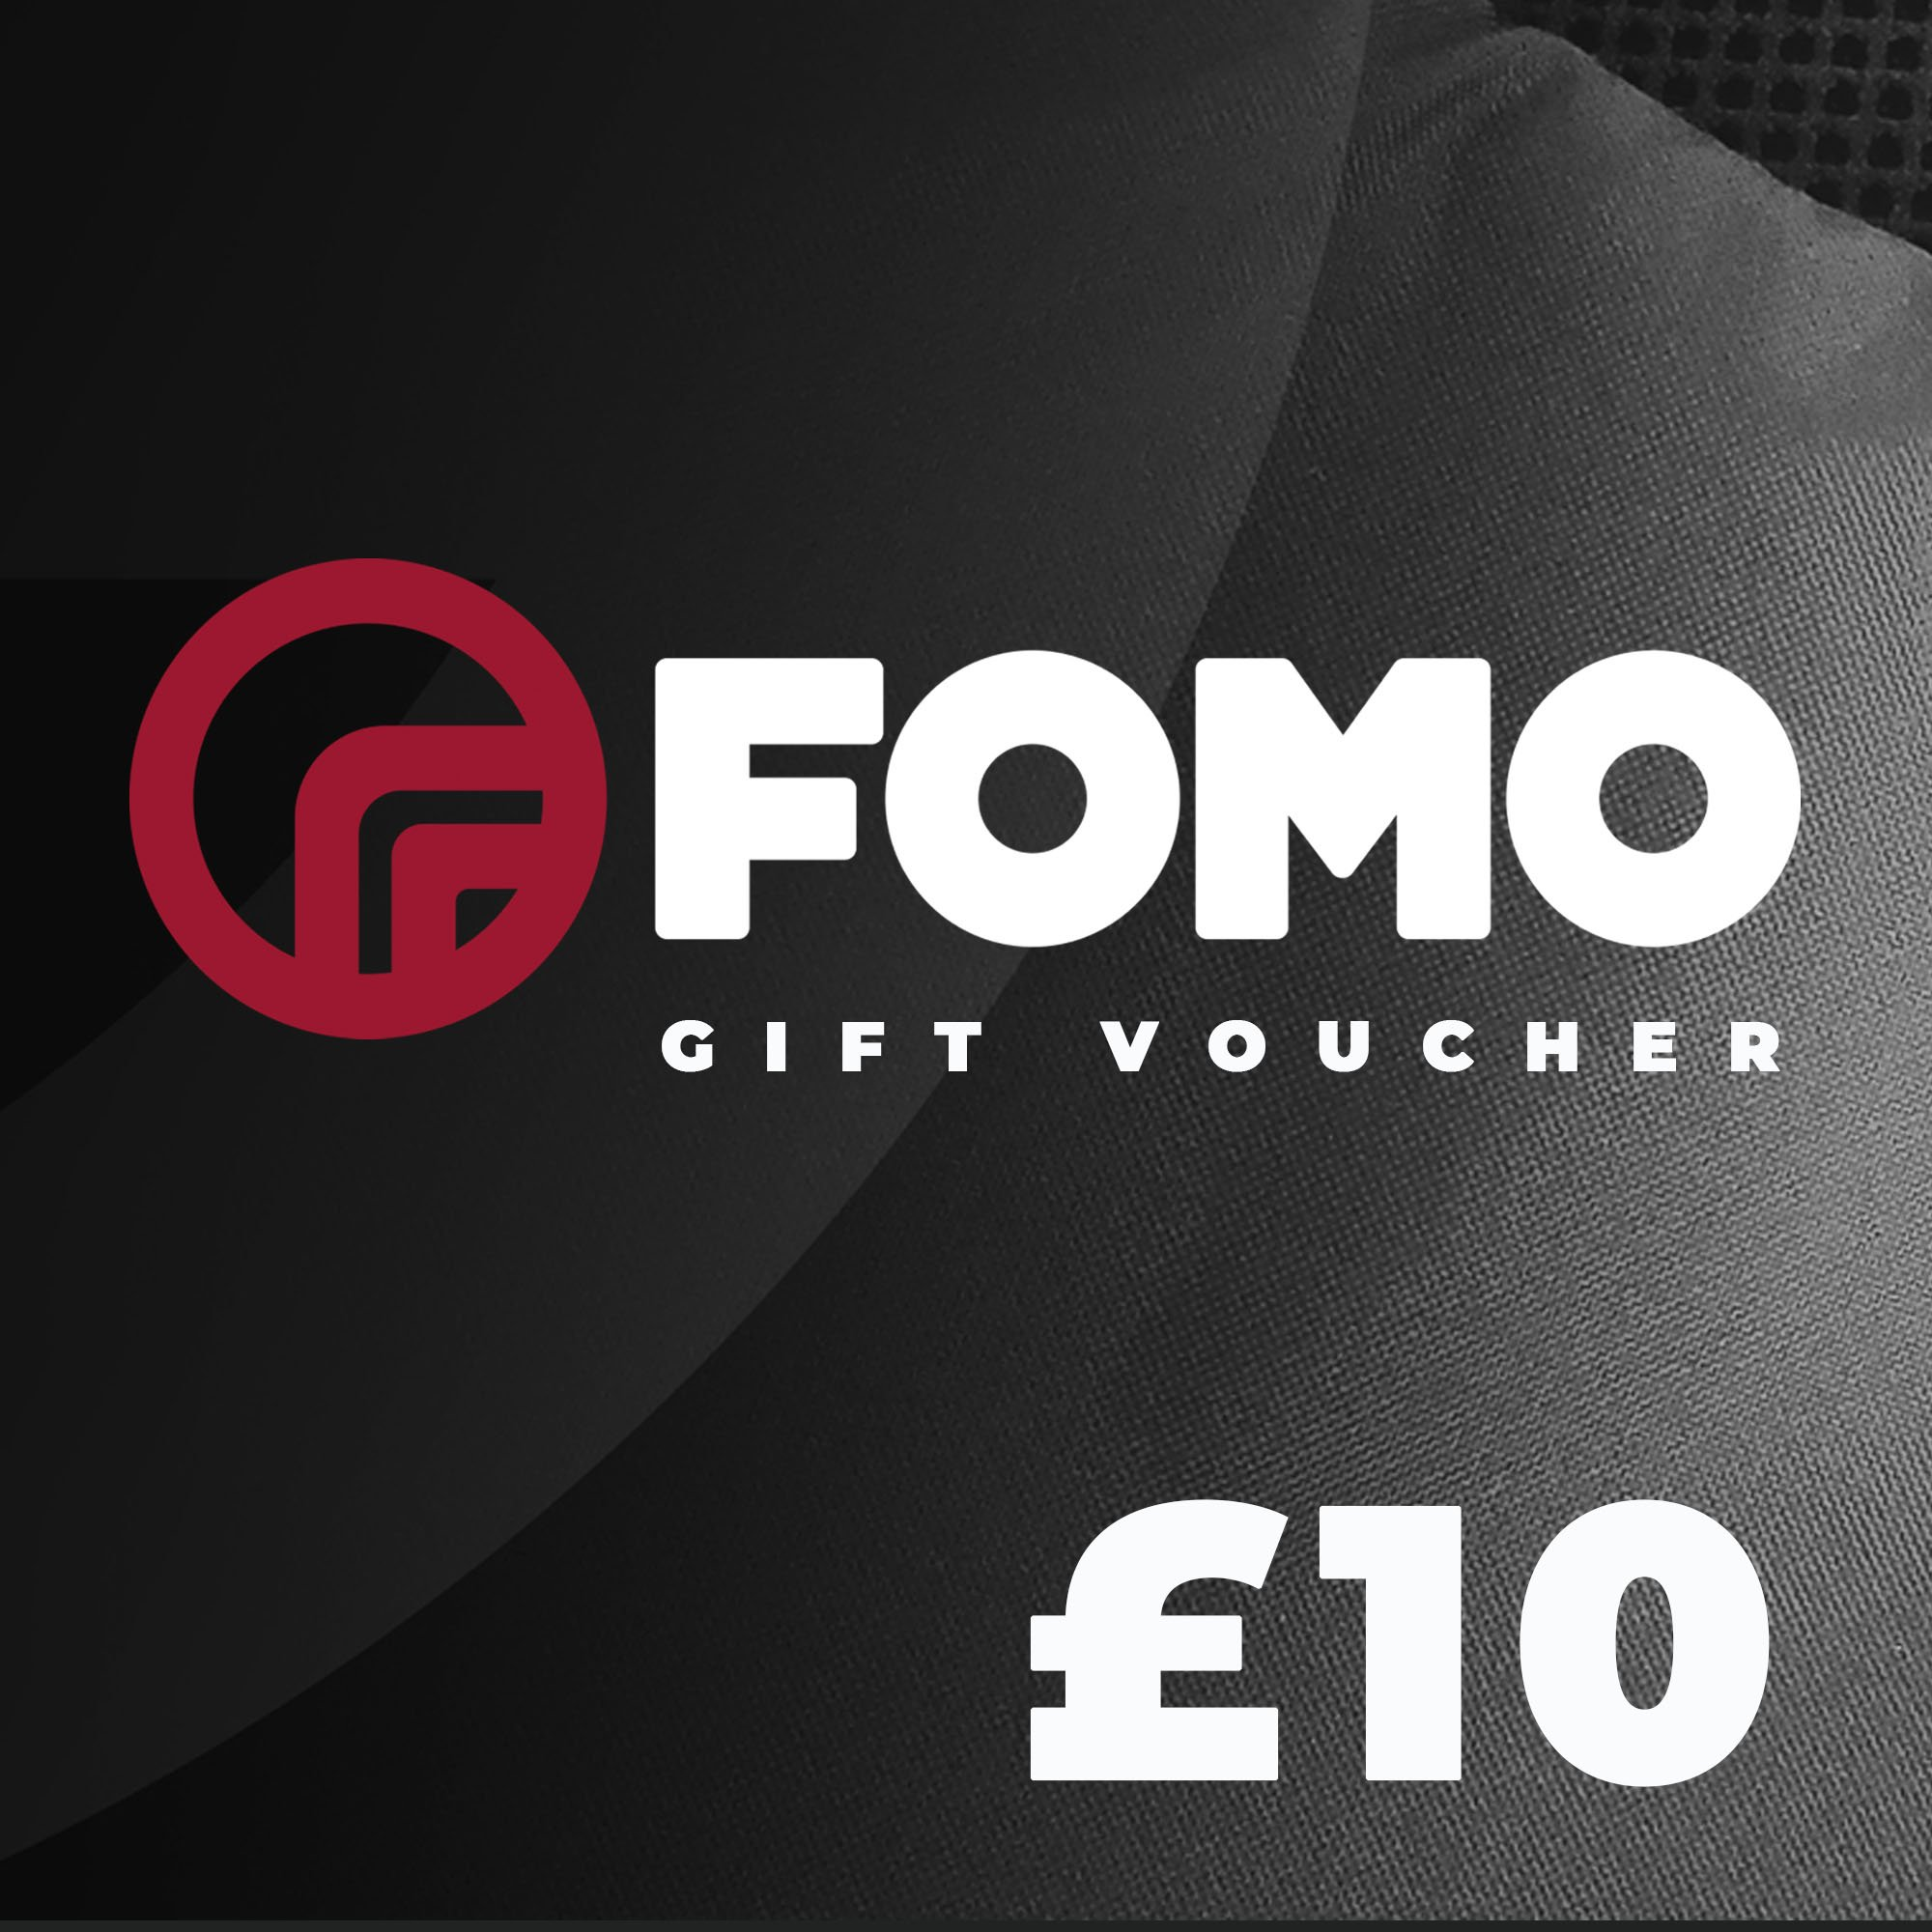 https://www.fomoprotection.com/wp-content/uploads/2019/11/Gift-Voucher-£10.jpg